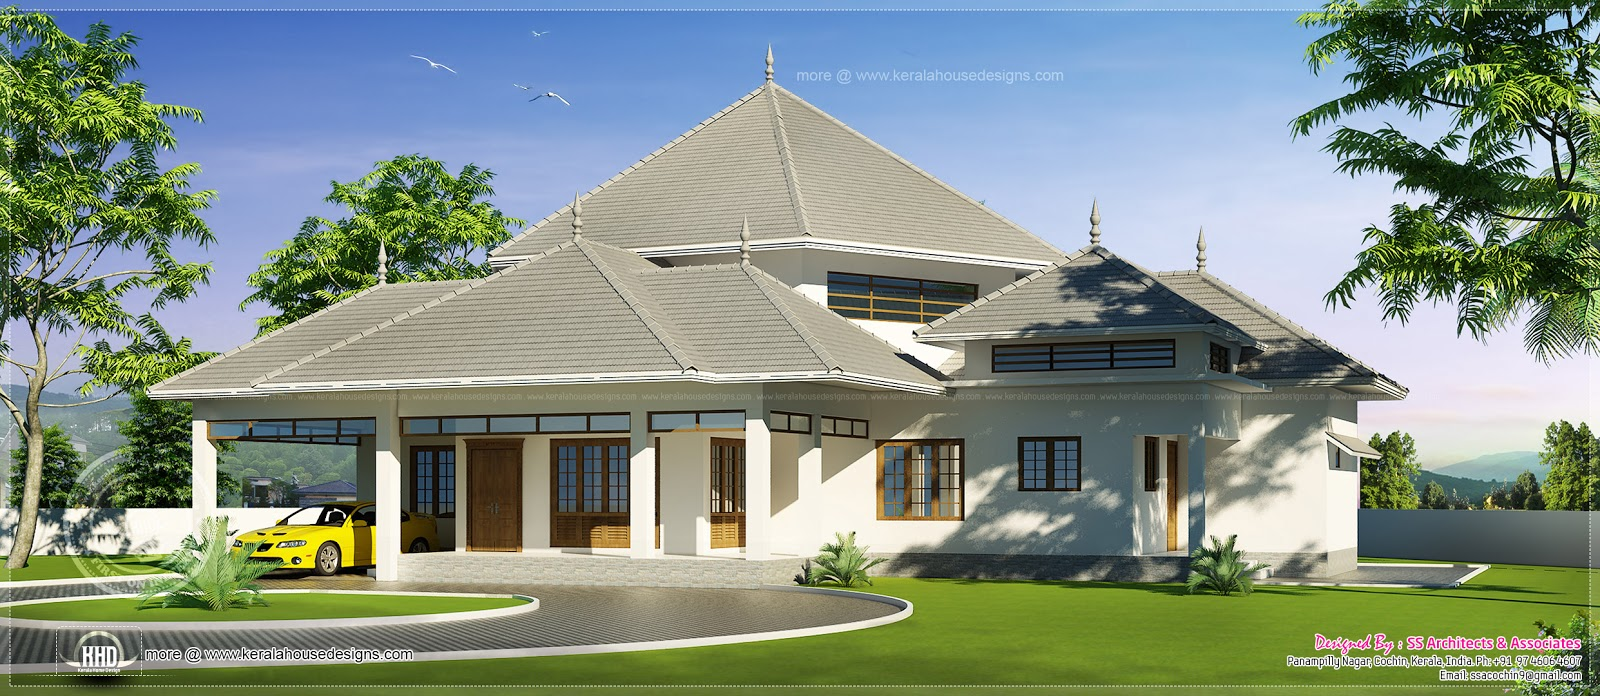 Kerala Style Modern Roof House In 2600 Kerala